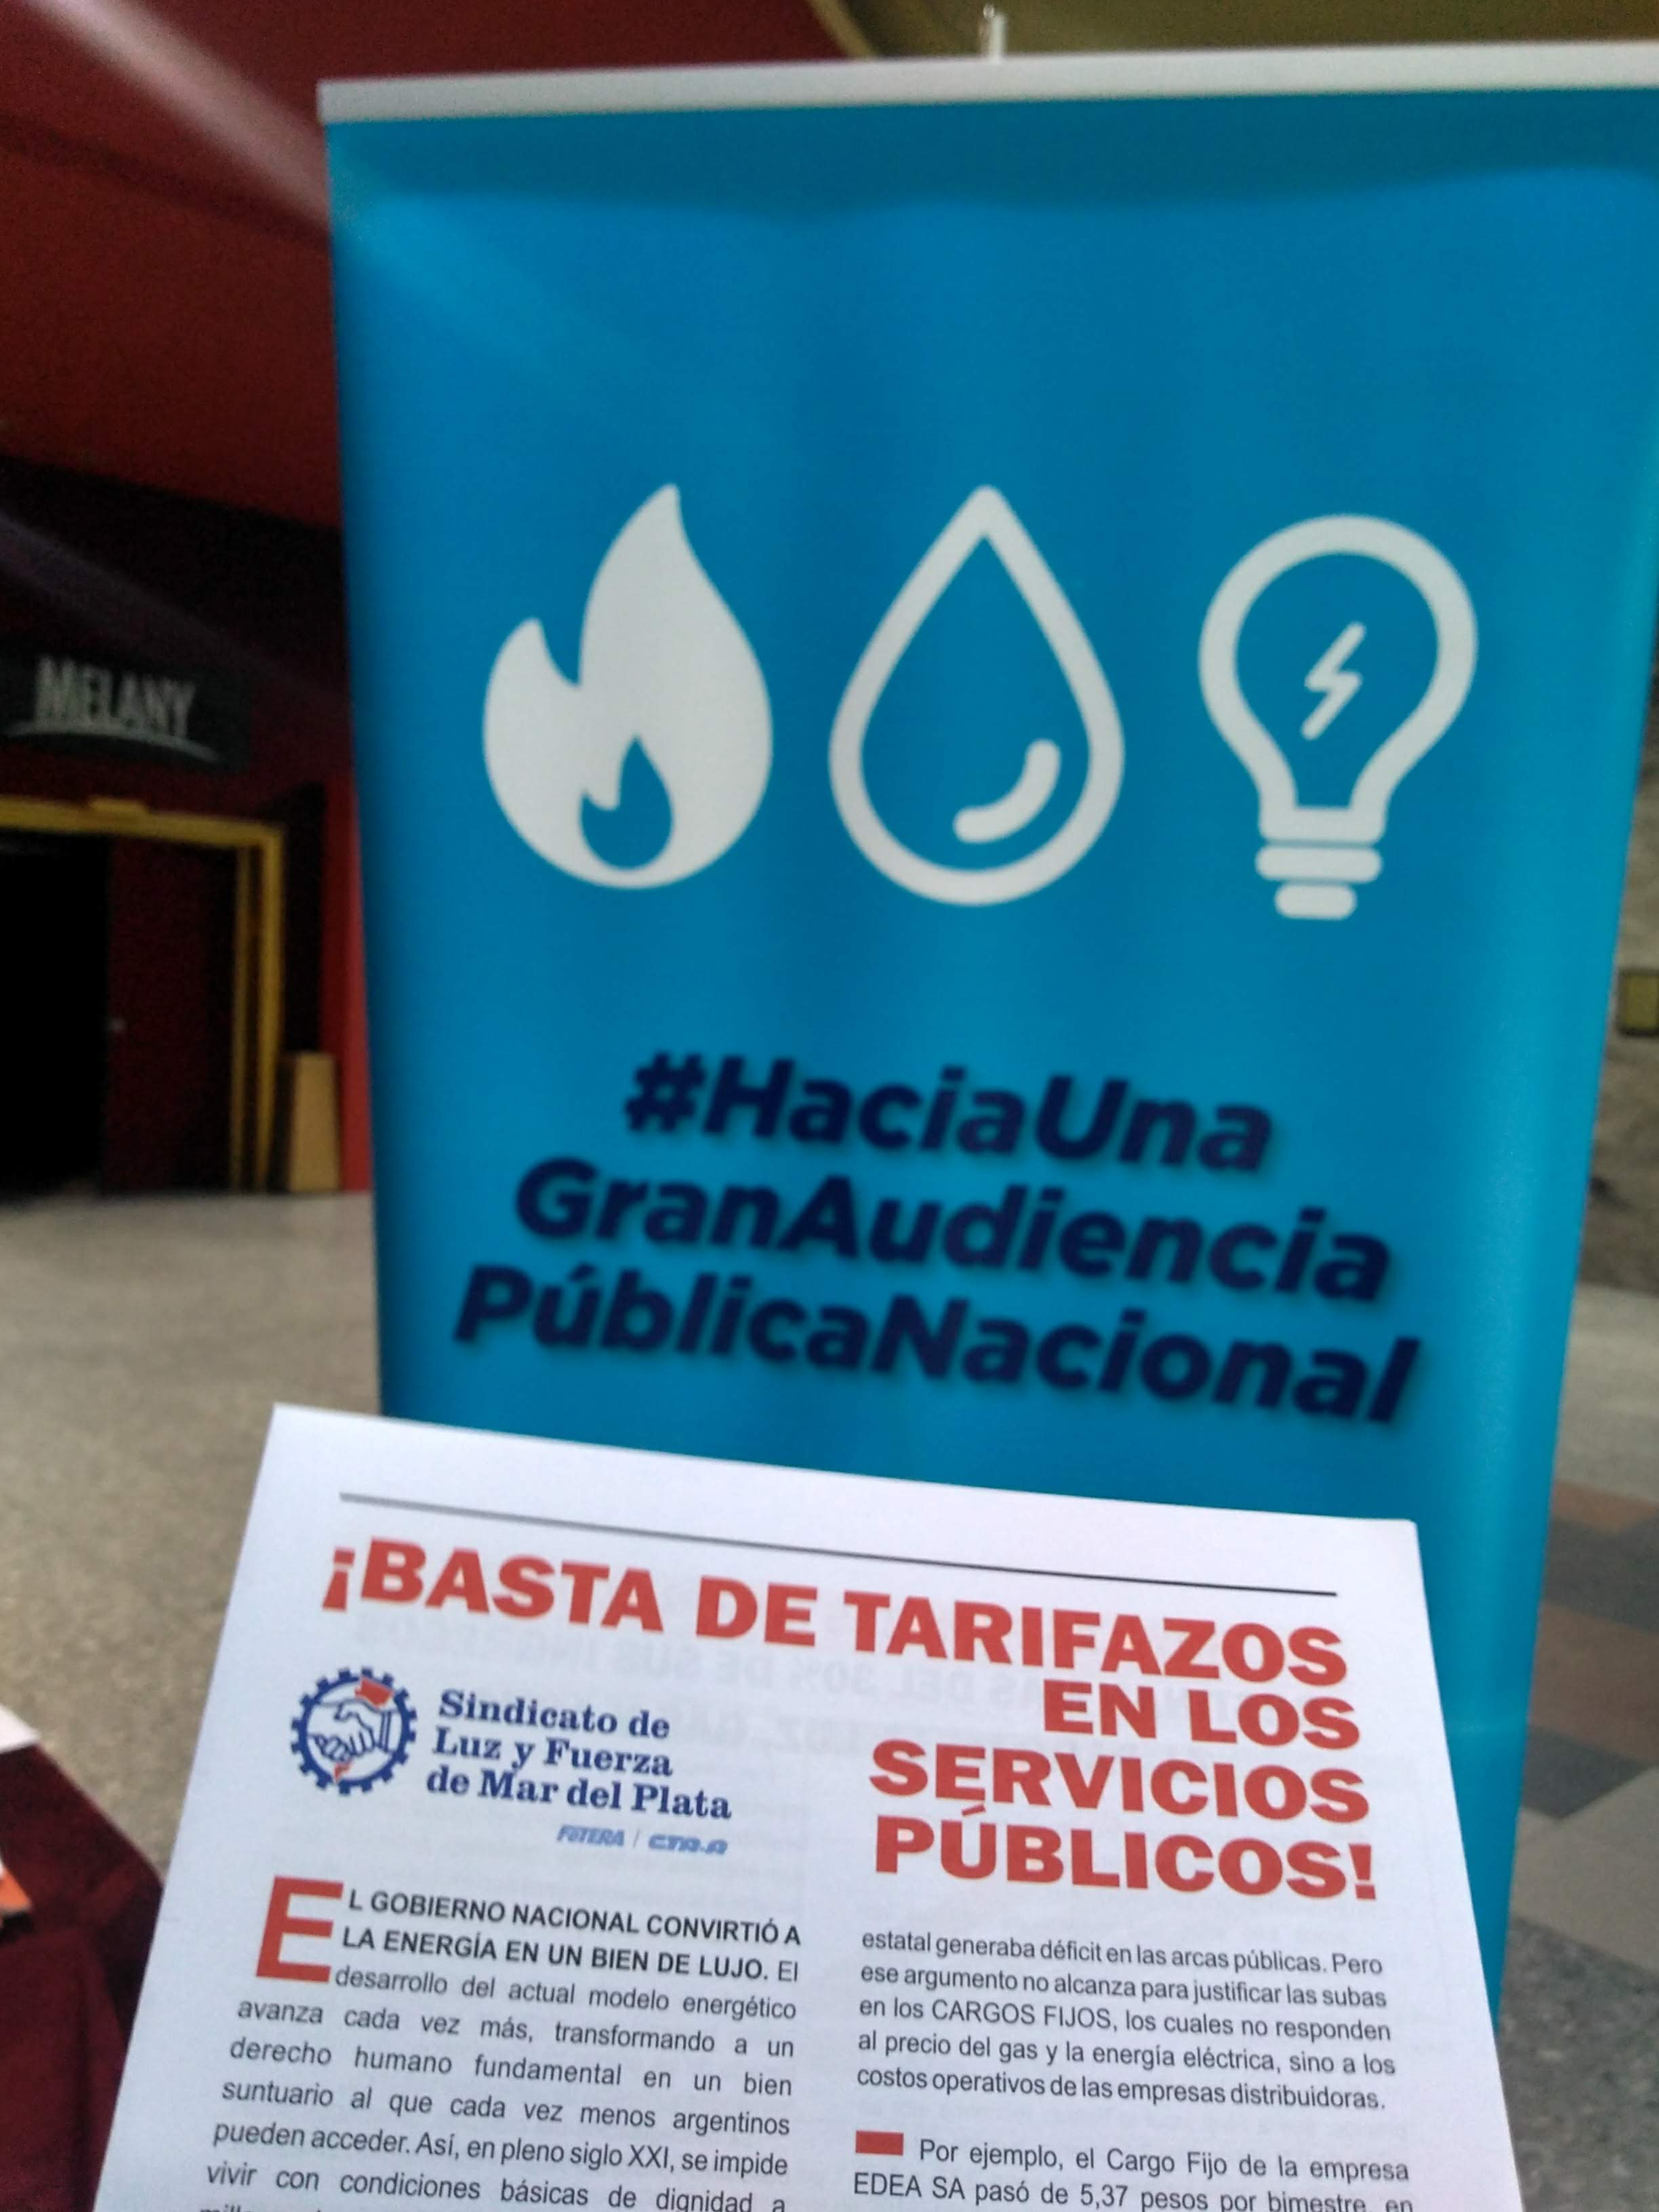 Enough with the rate hikes! Public hearing in Mar del Plata